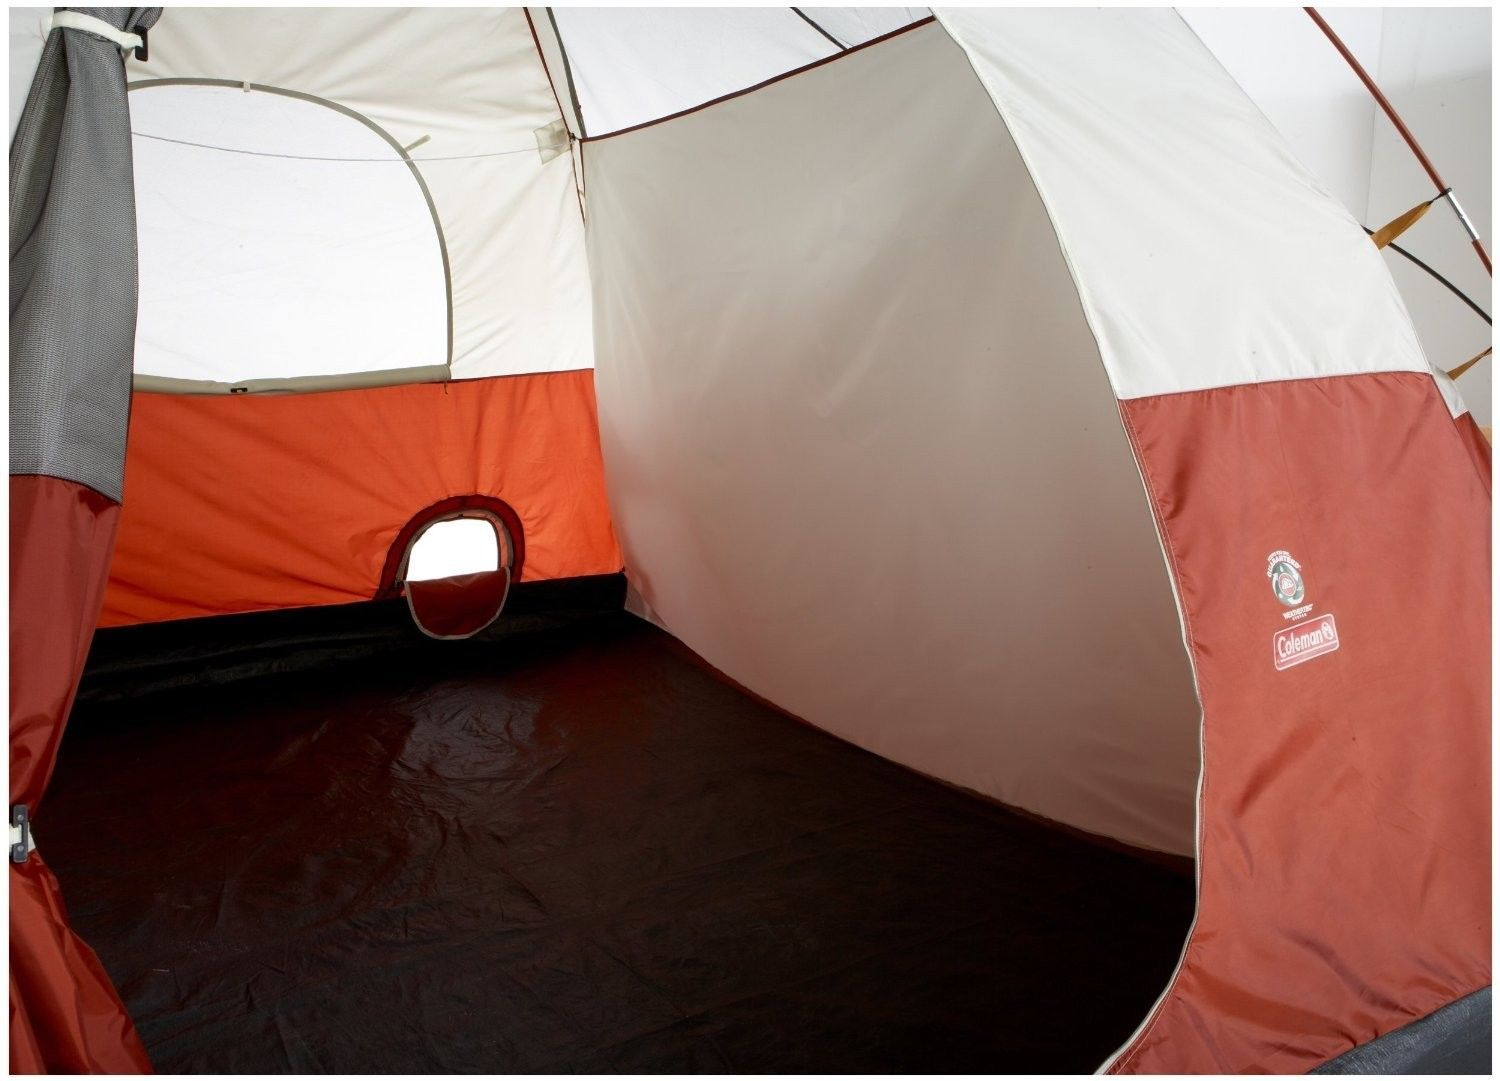 & Coleman Red Canyon Dome Tent 8-Person 17x10 and 50 similar items